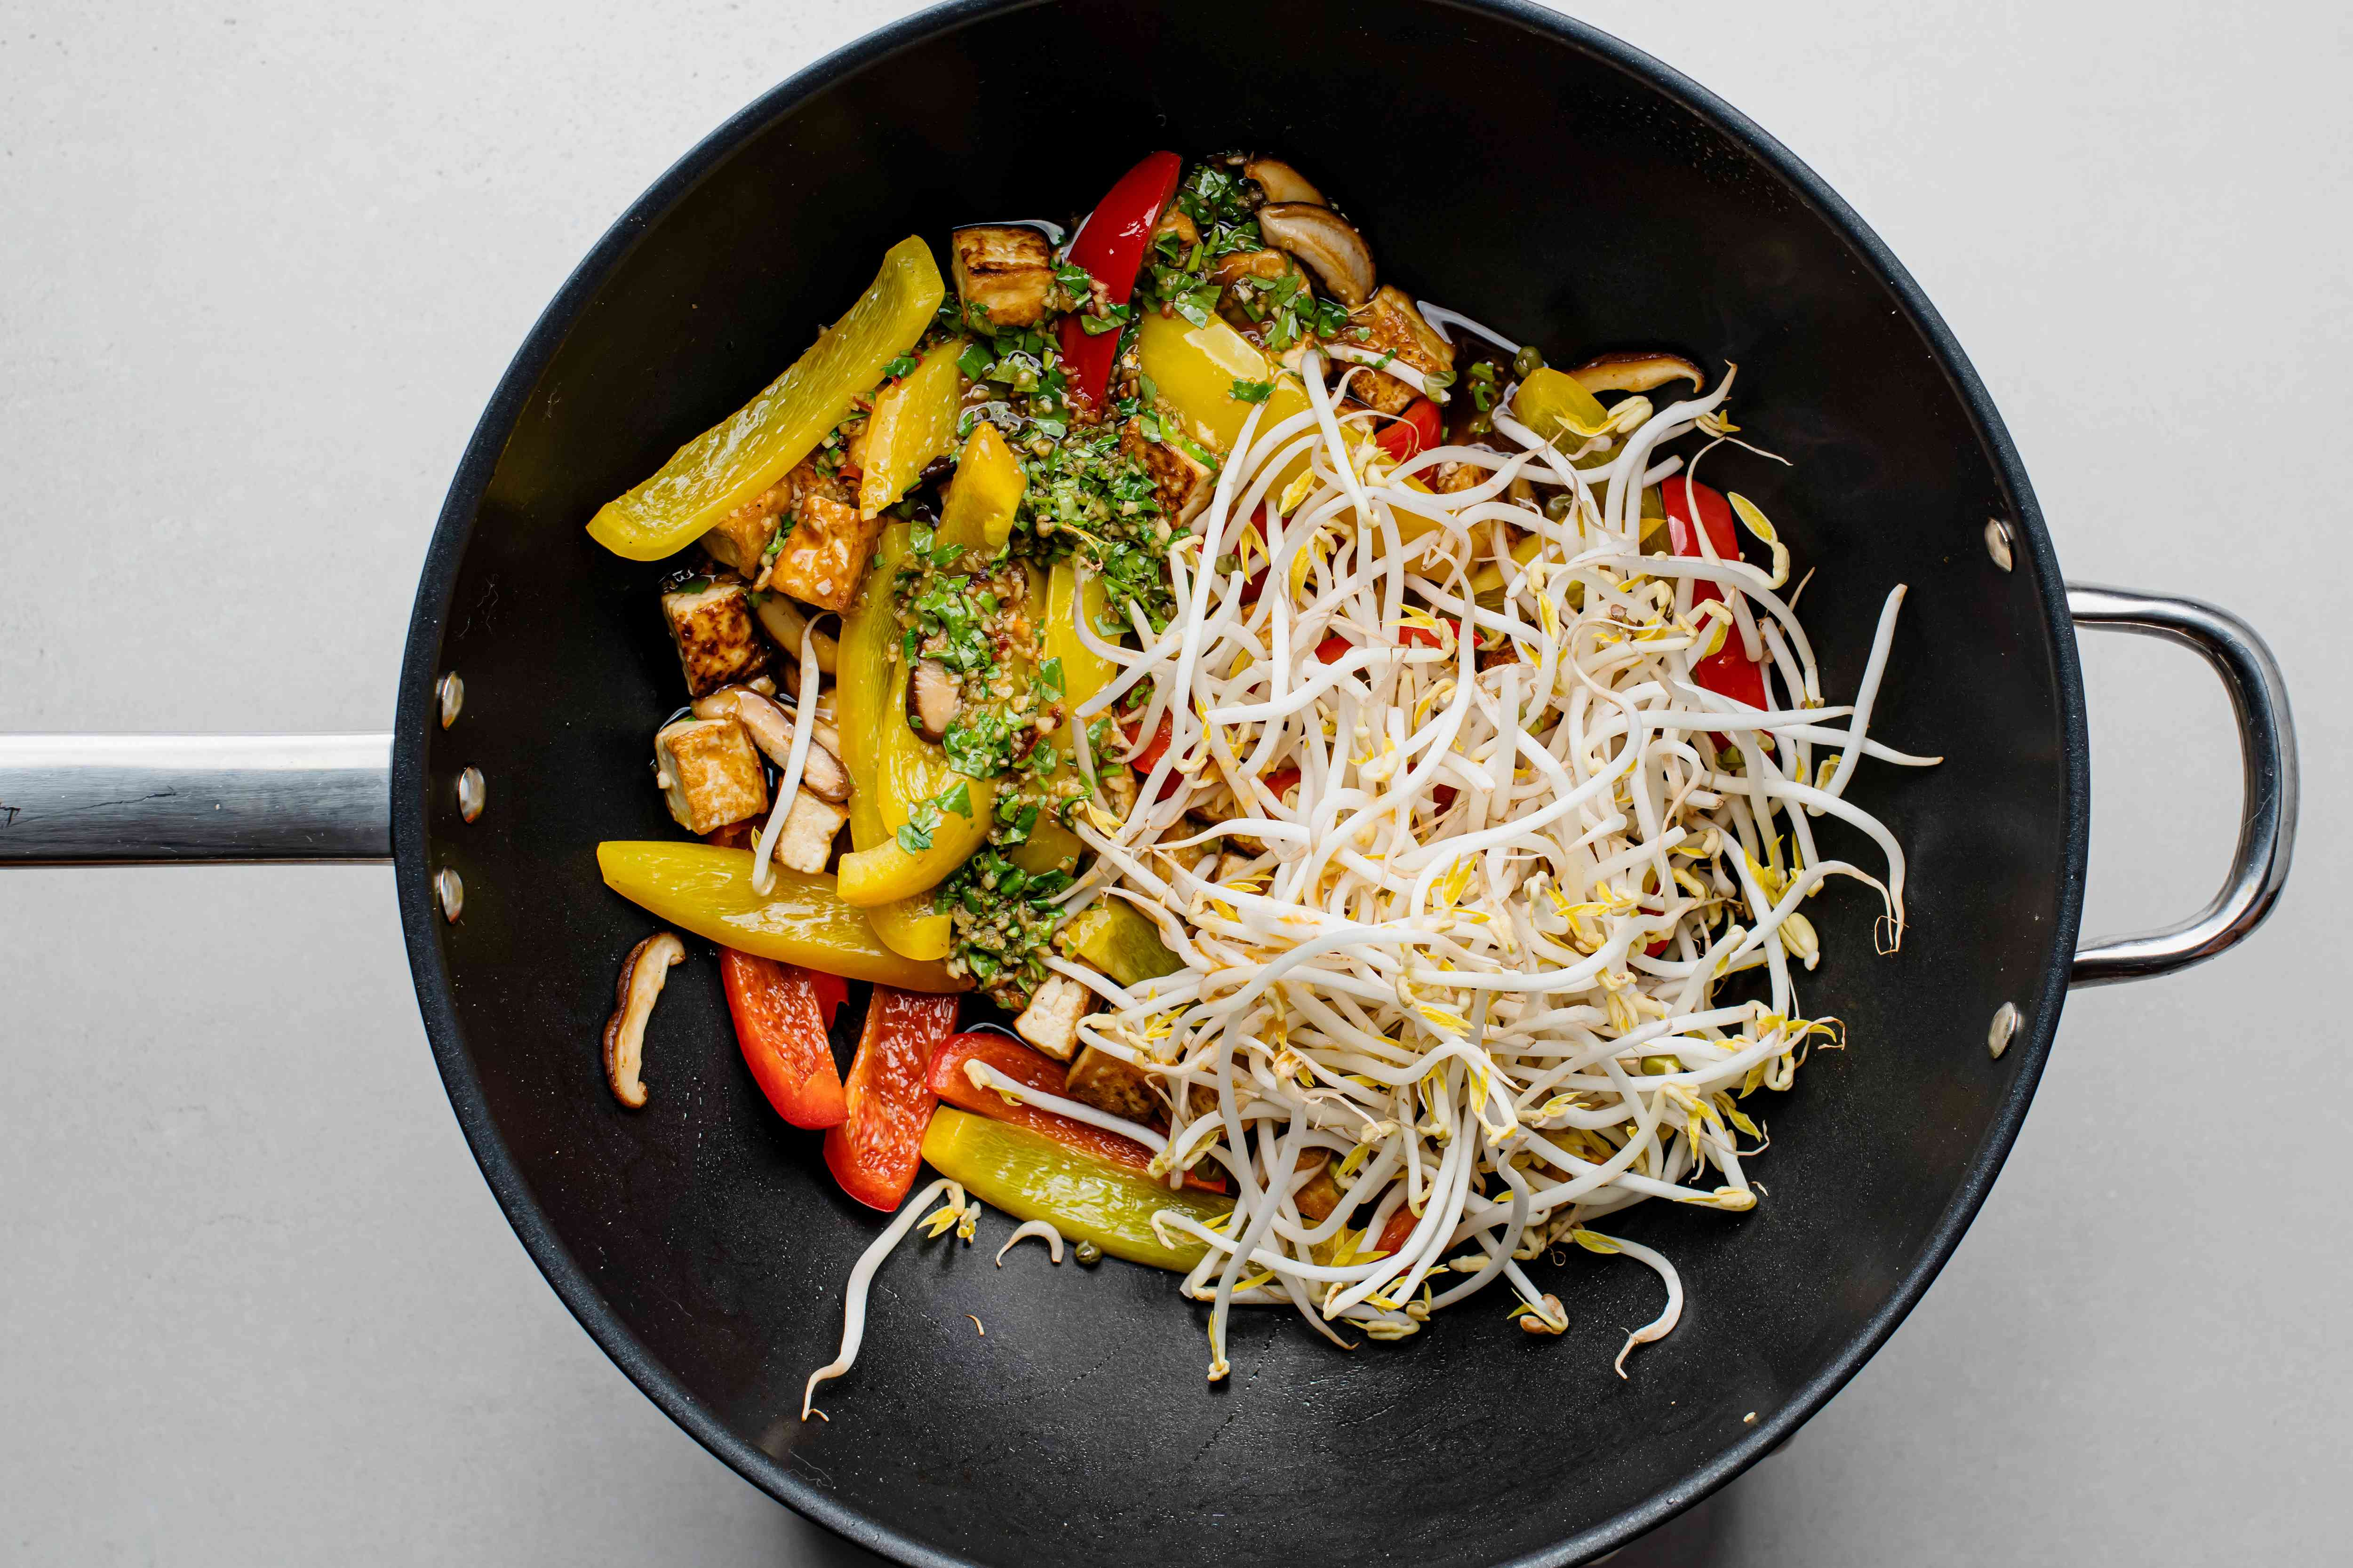 mung beans sprouts and the stir-fry sauce added to peppers and tofu in the wok